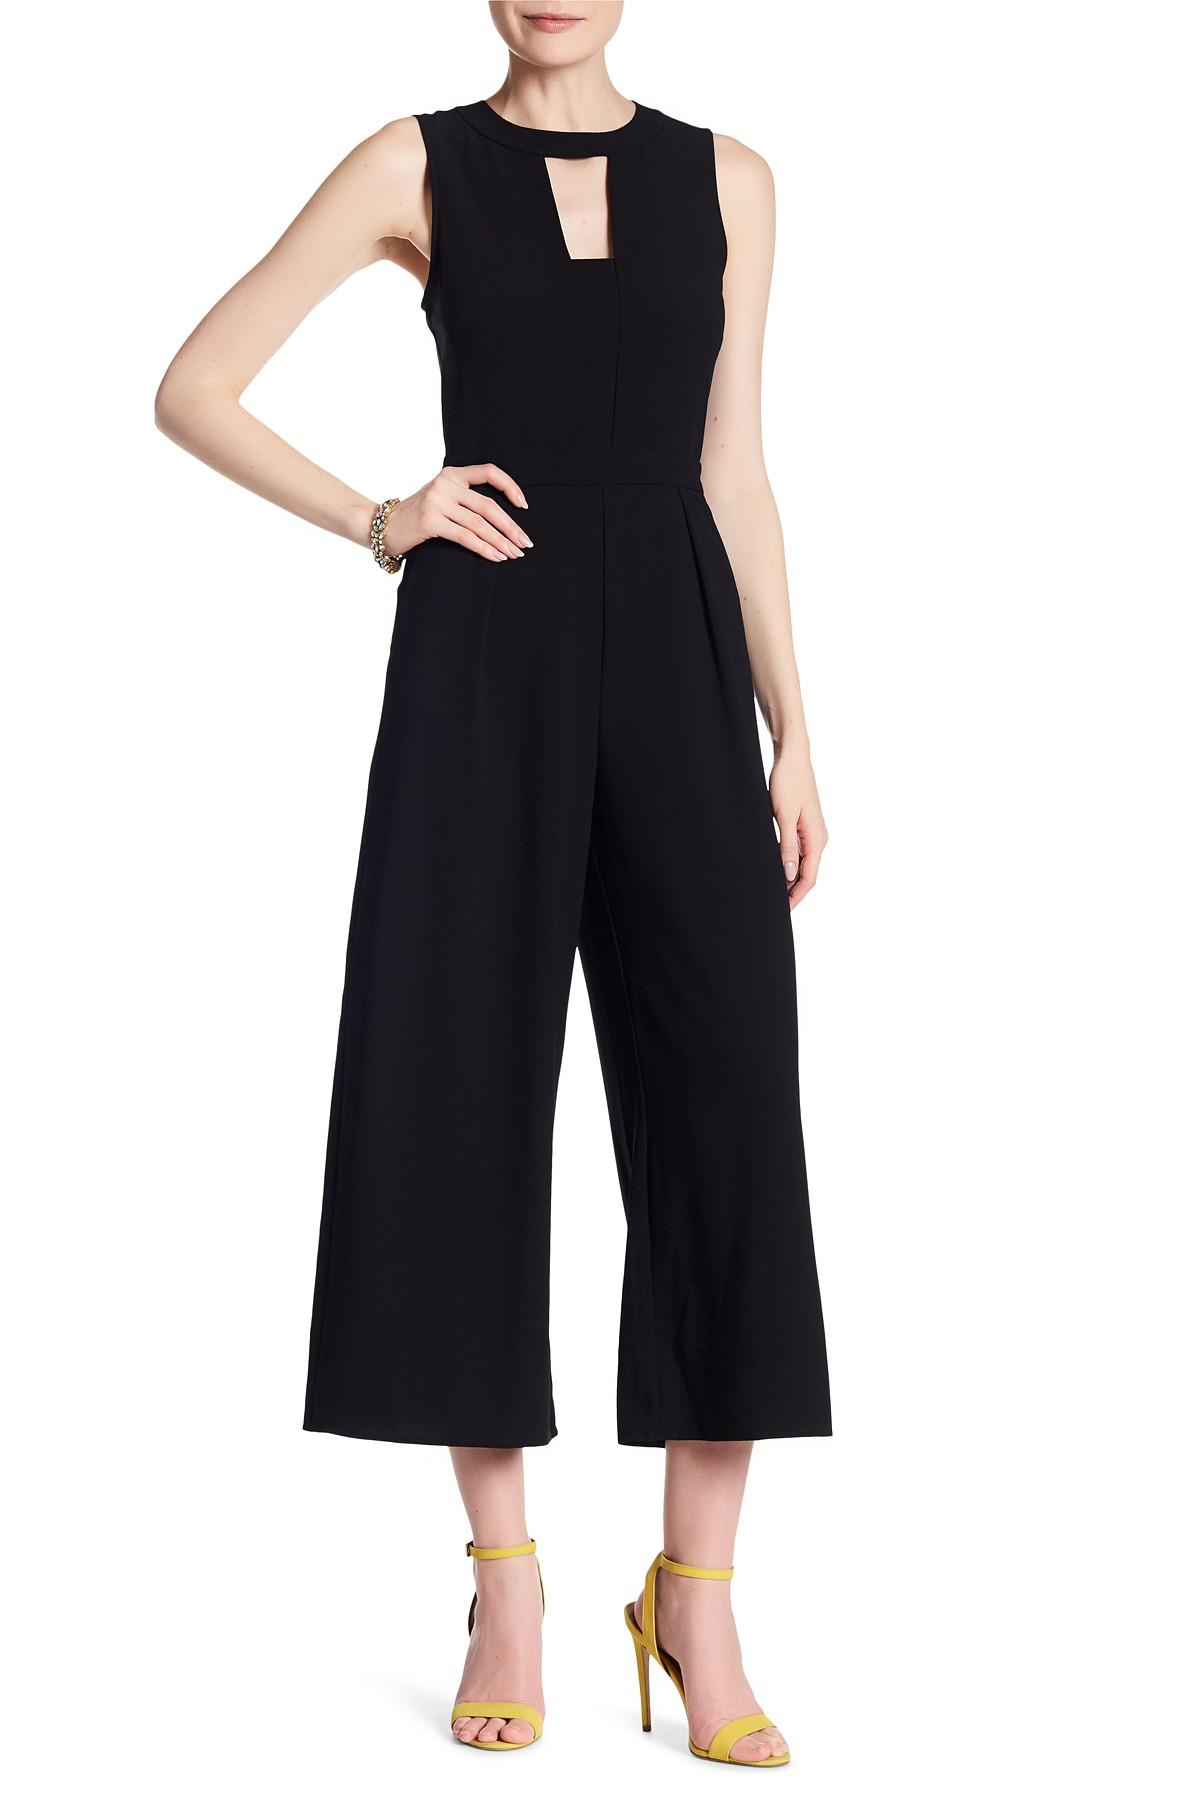 62da94a2cf4 Lyst - Laundry by Shelli Segal Front Cutout Crepe Jumpsuit in Black